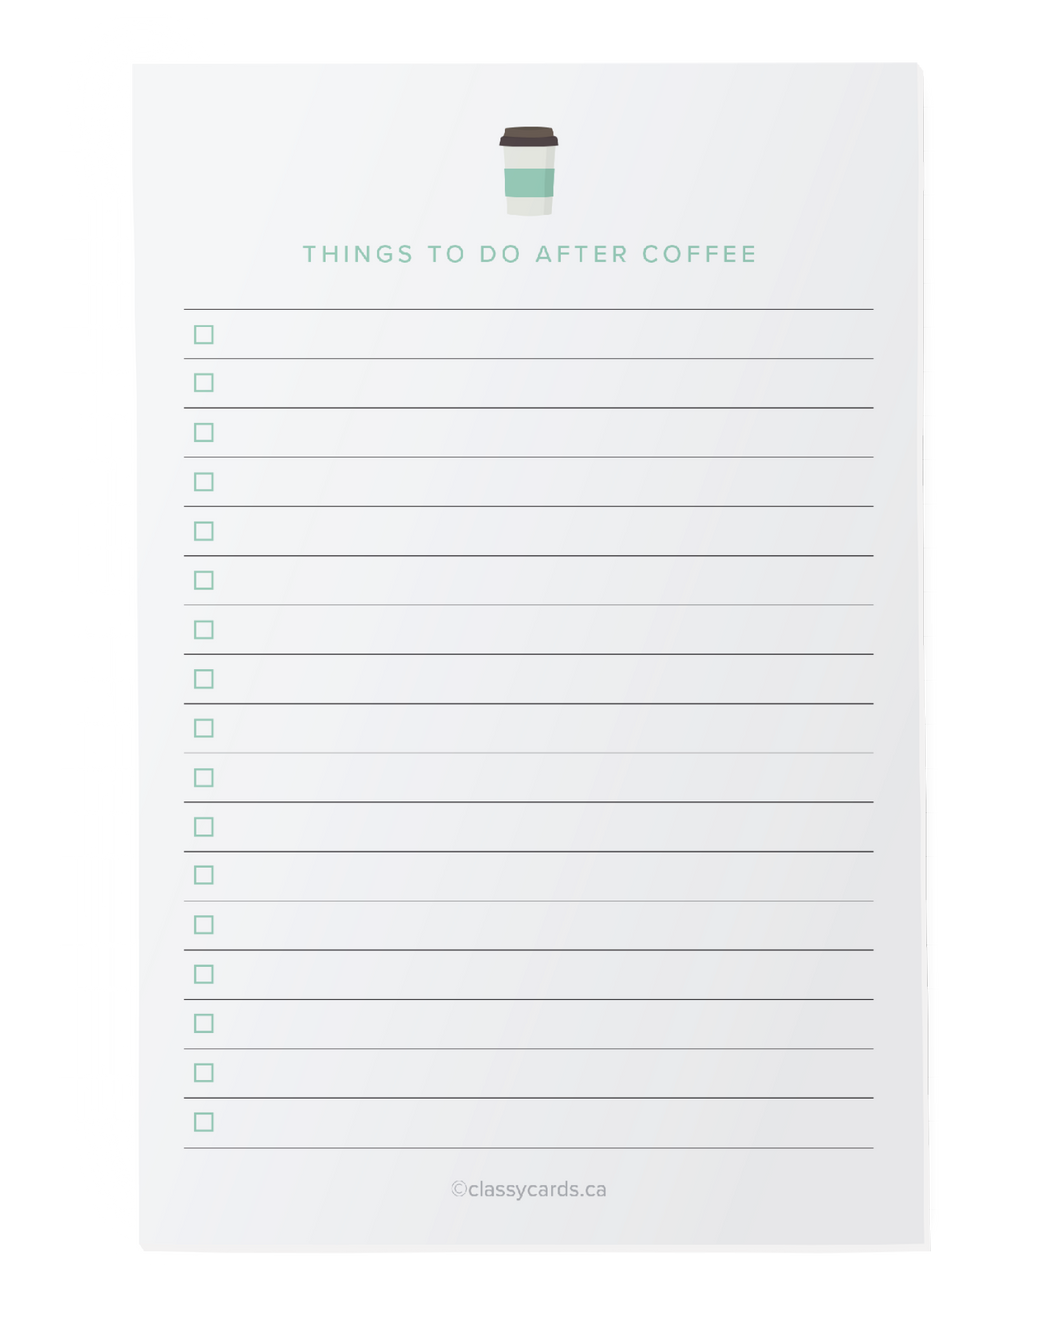 After Coffee Notepad